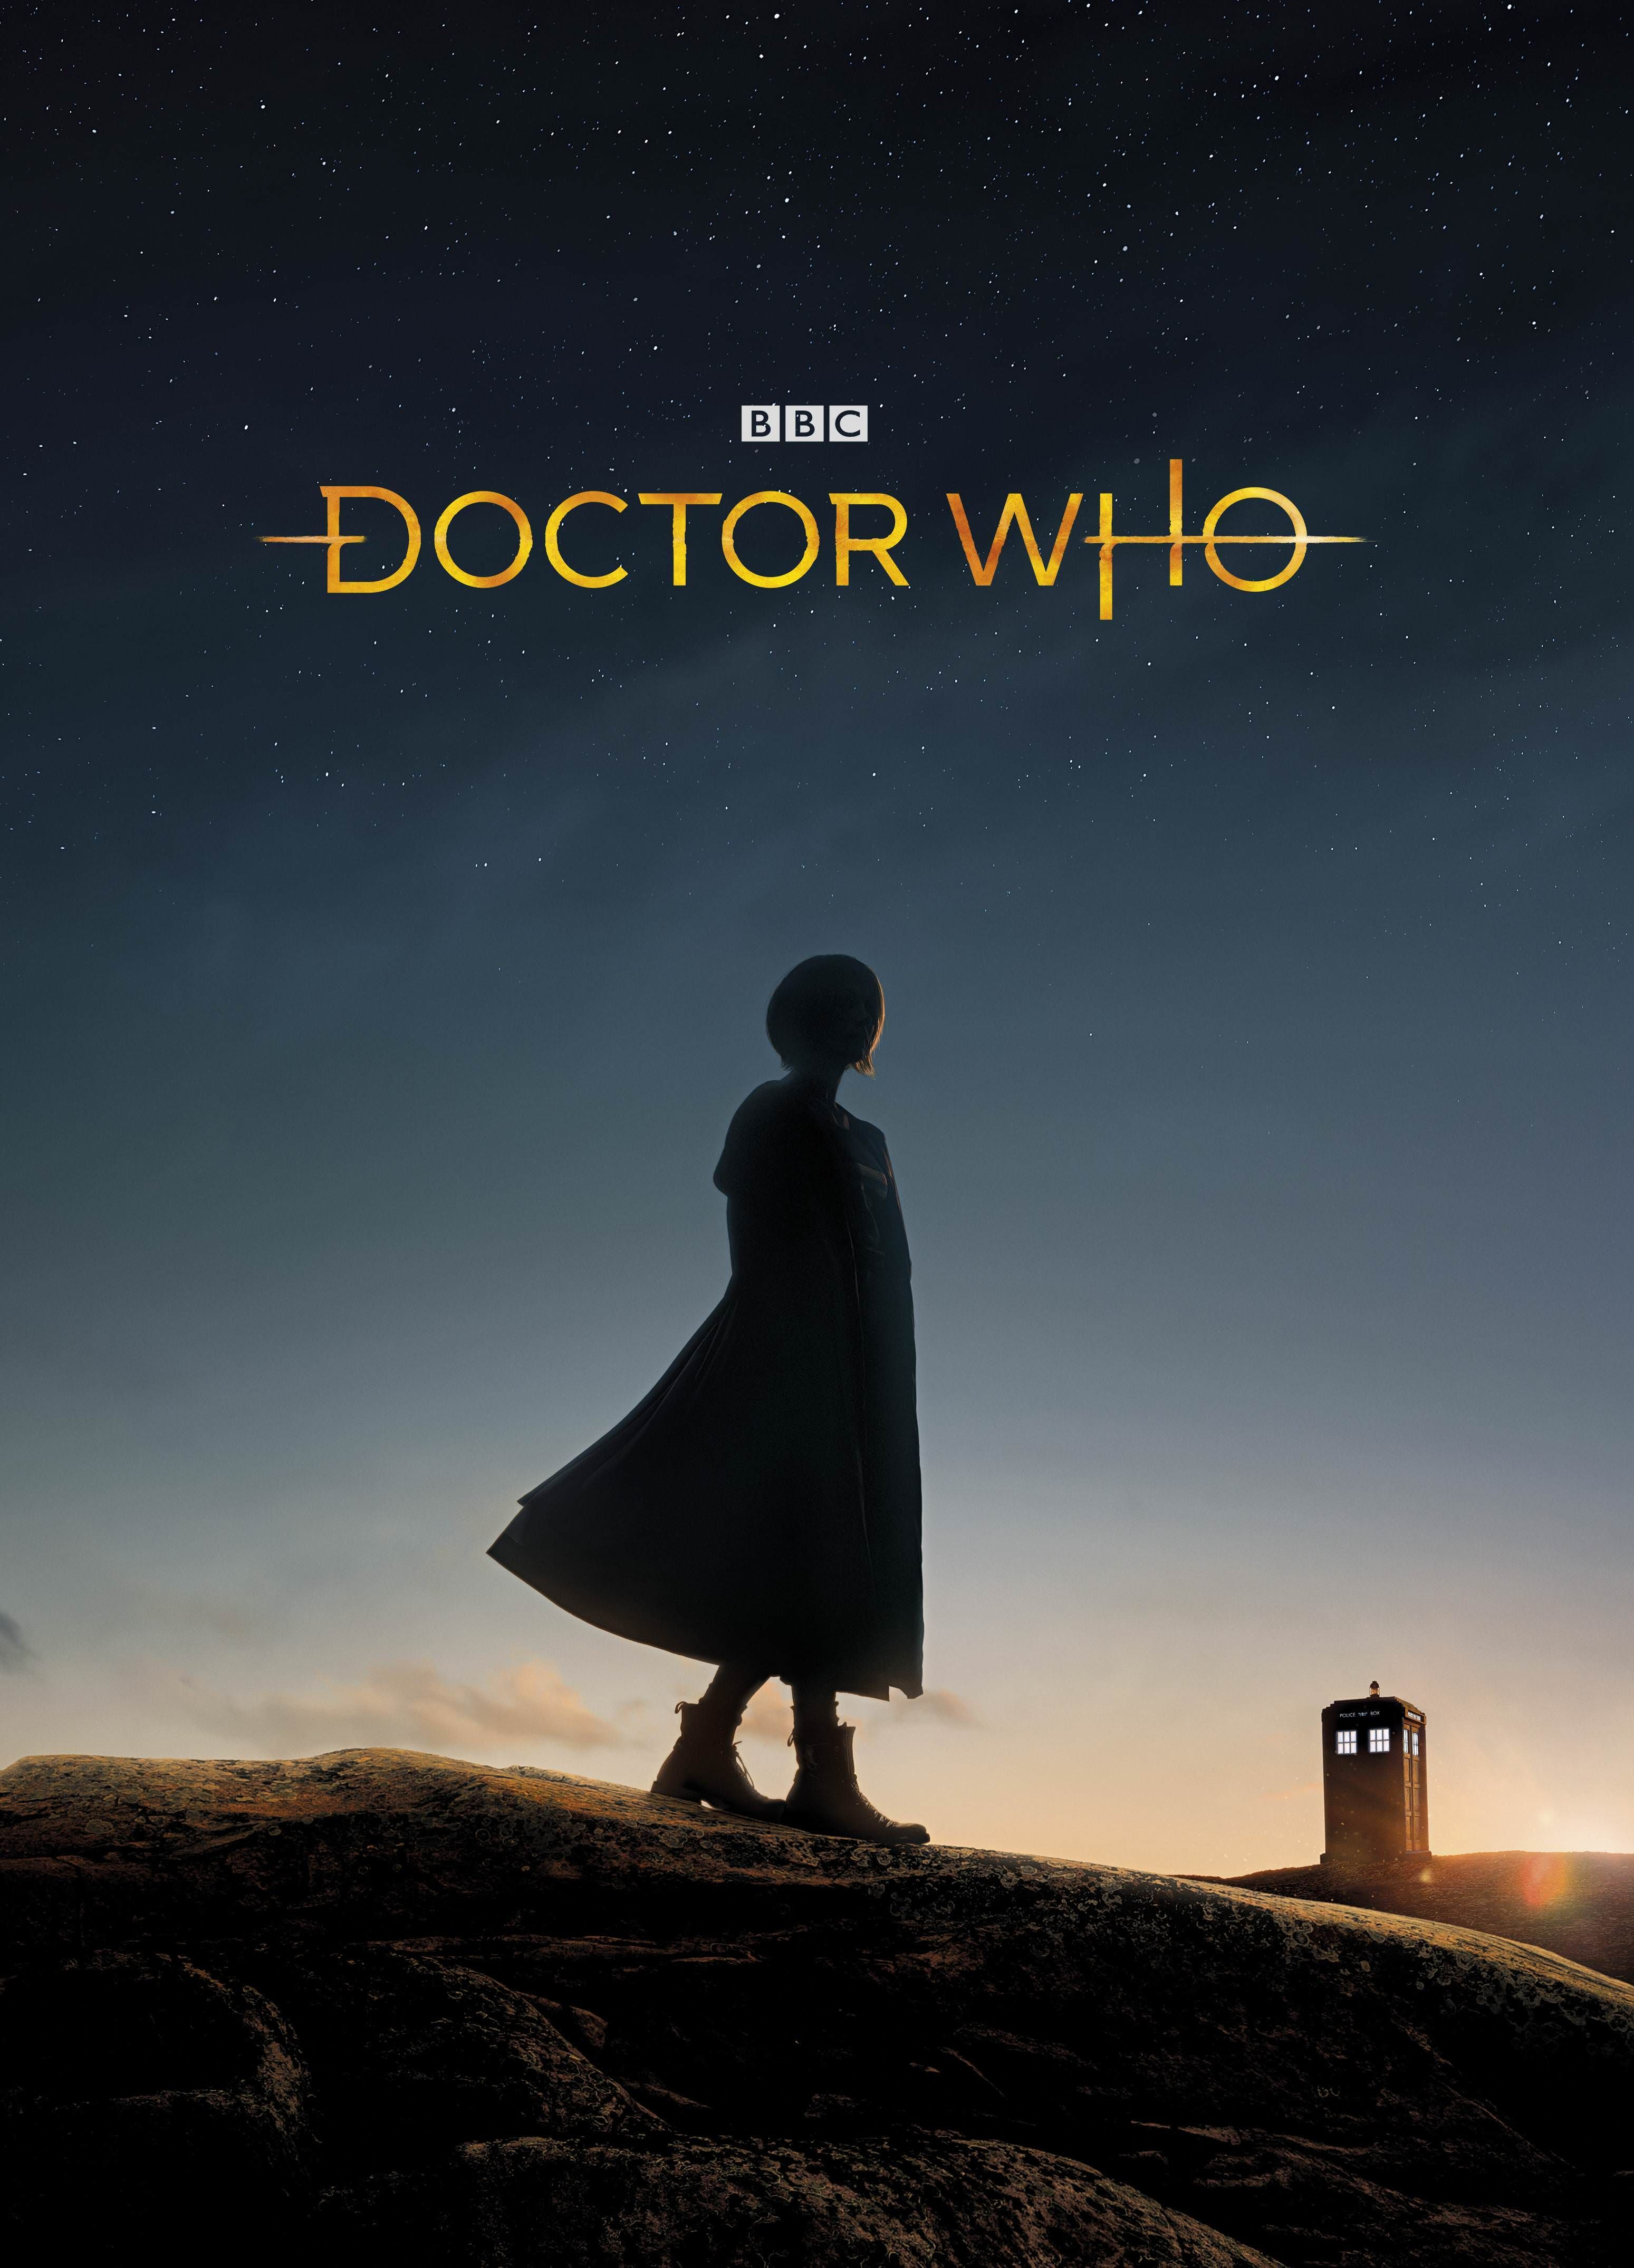 3098x4300 New Doctor Who promotional image Download at: http://www ...